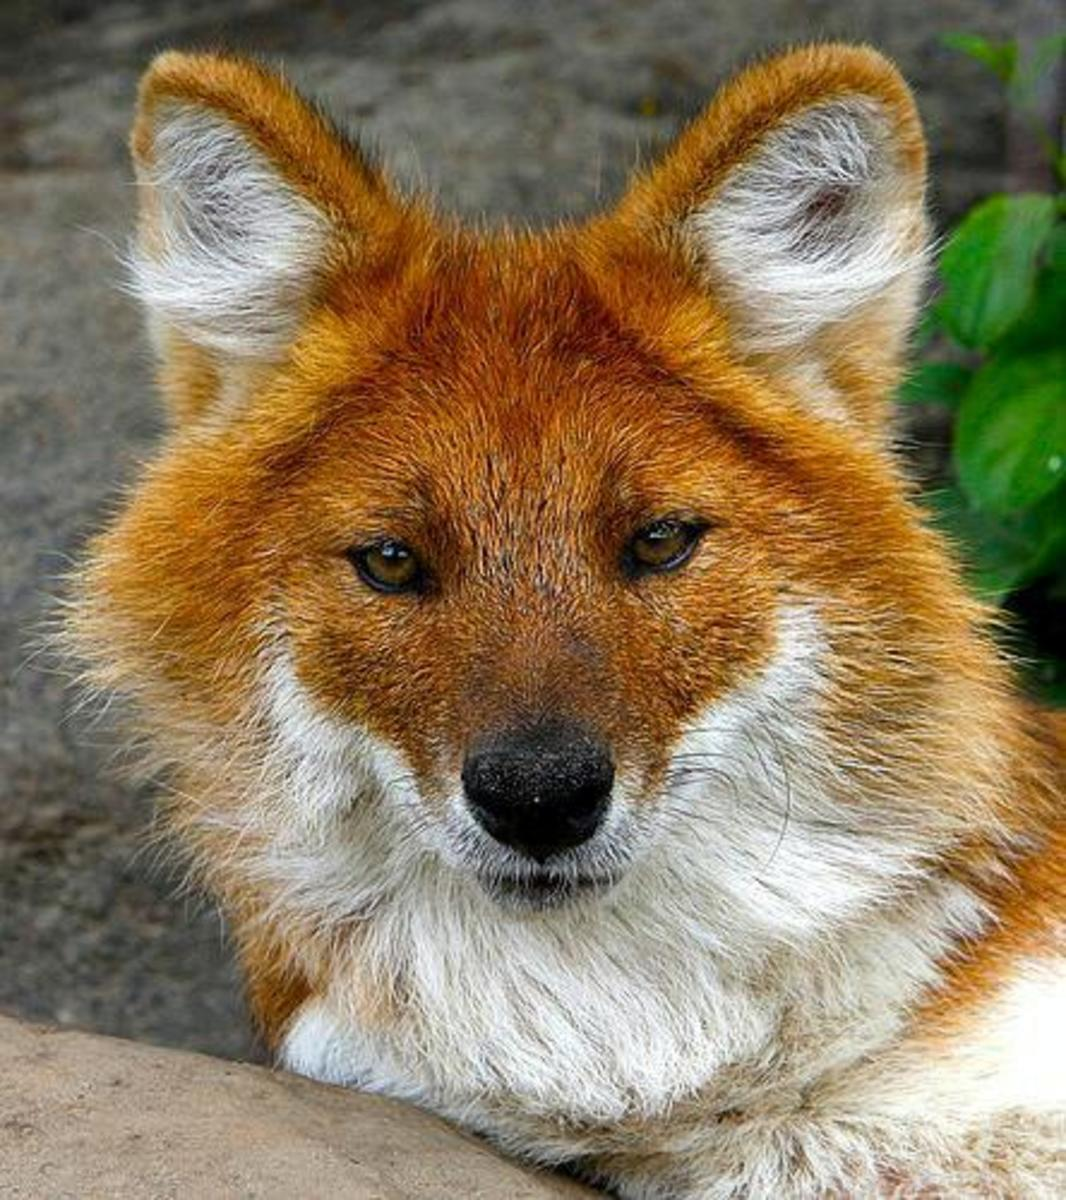 During the winter, dholes grow a fluffier coat, which is brighter orange with white on the underside.